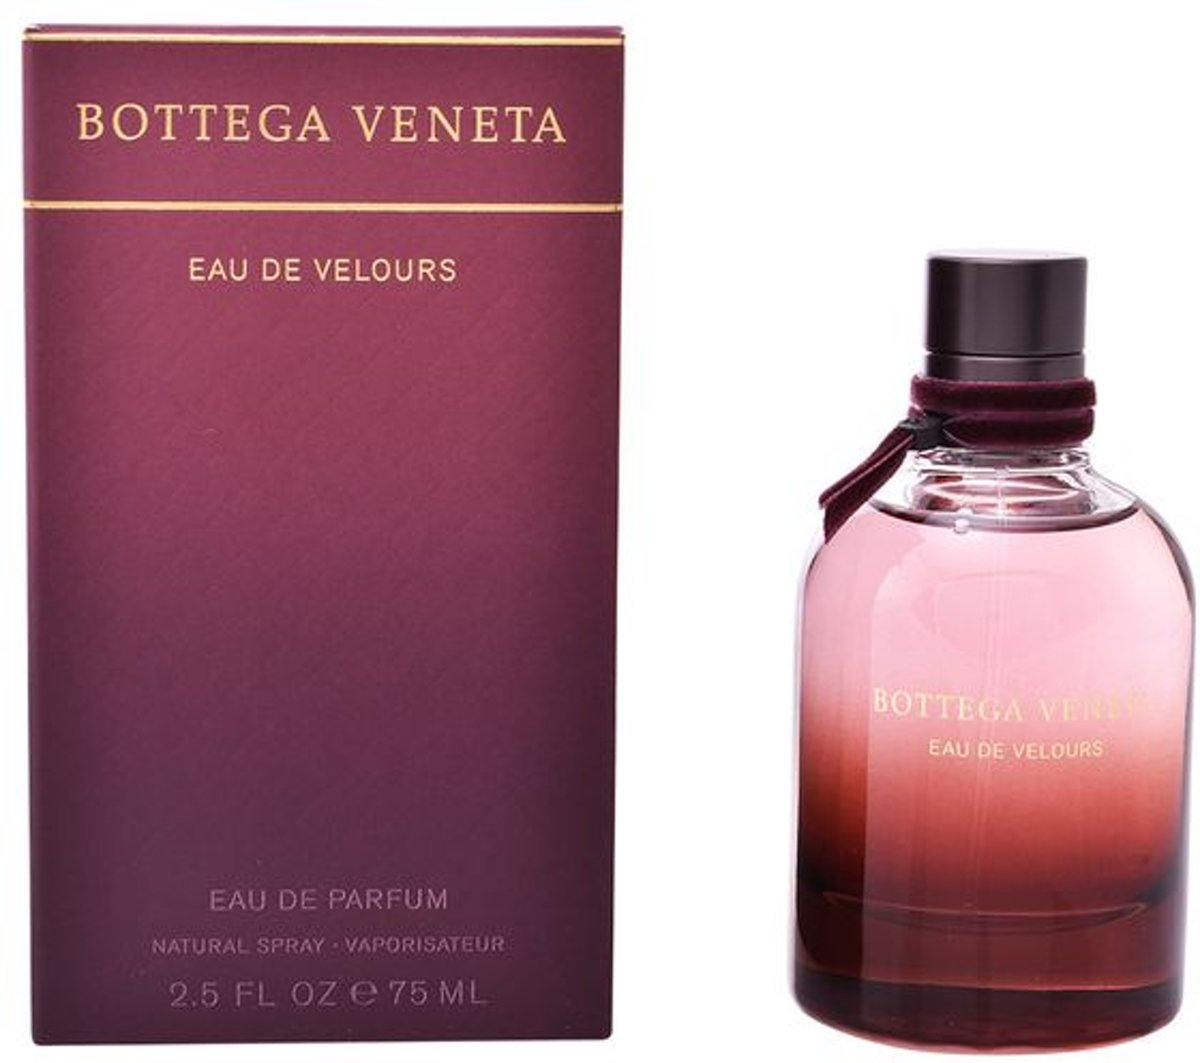 Bottega Veneta Eau de Velours Eau de Parfum Spray 75 ml